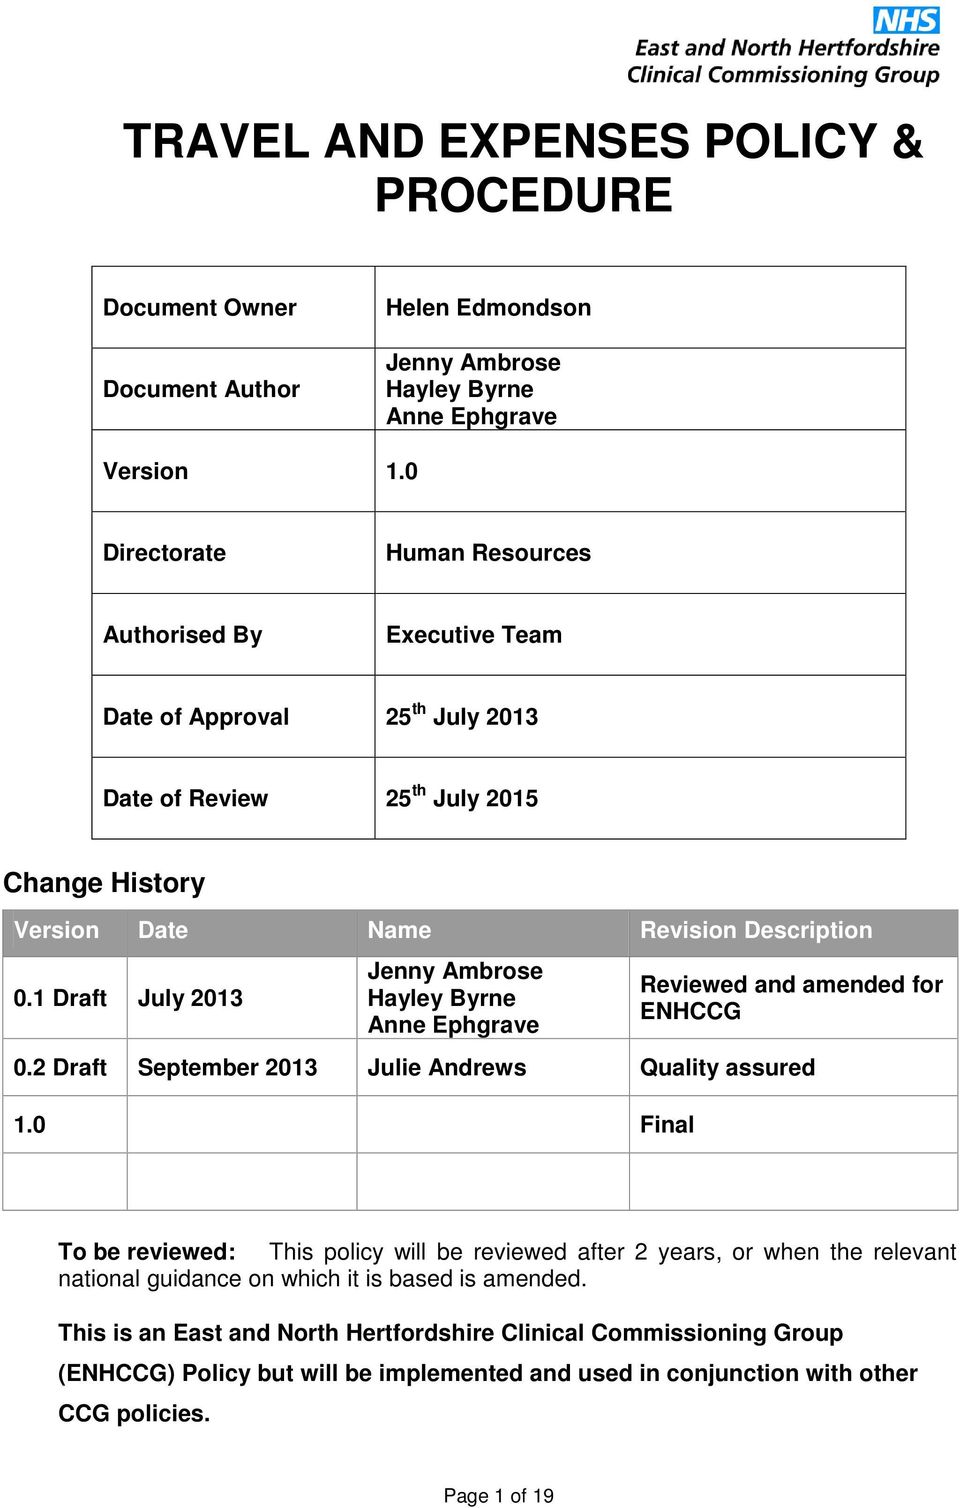 1 Draft July 2013 Jenny Ambrose Hayley Byrne Anne Ephgrave Reviewed and amended for ENHCCG 0.2 Draft September 2013 Julie Andrews Quality assured 1.